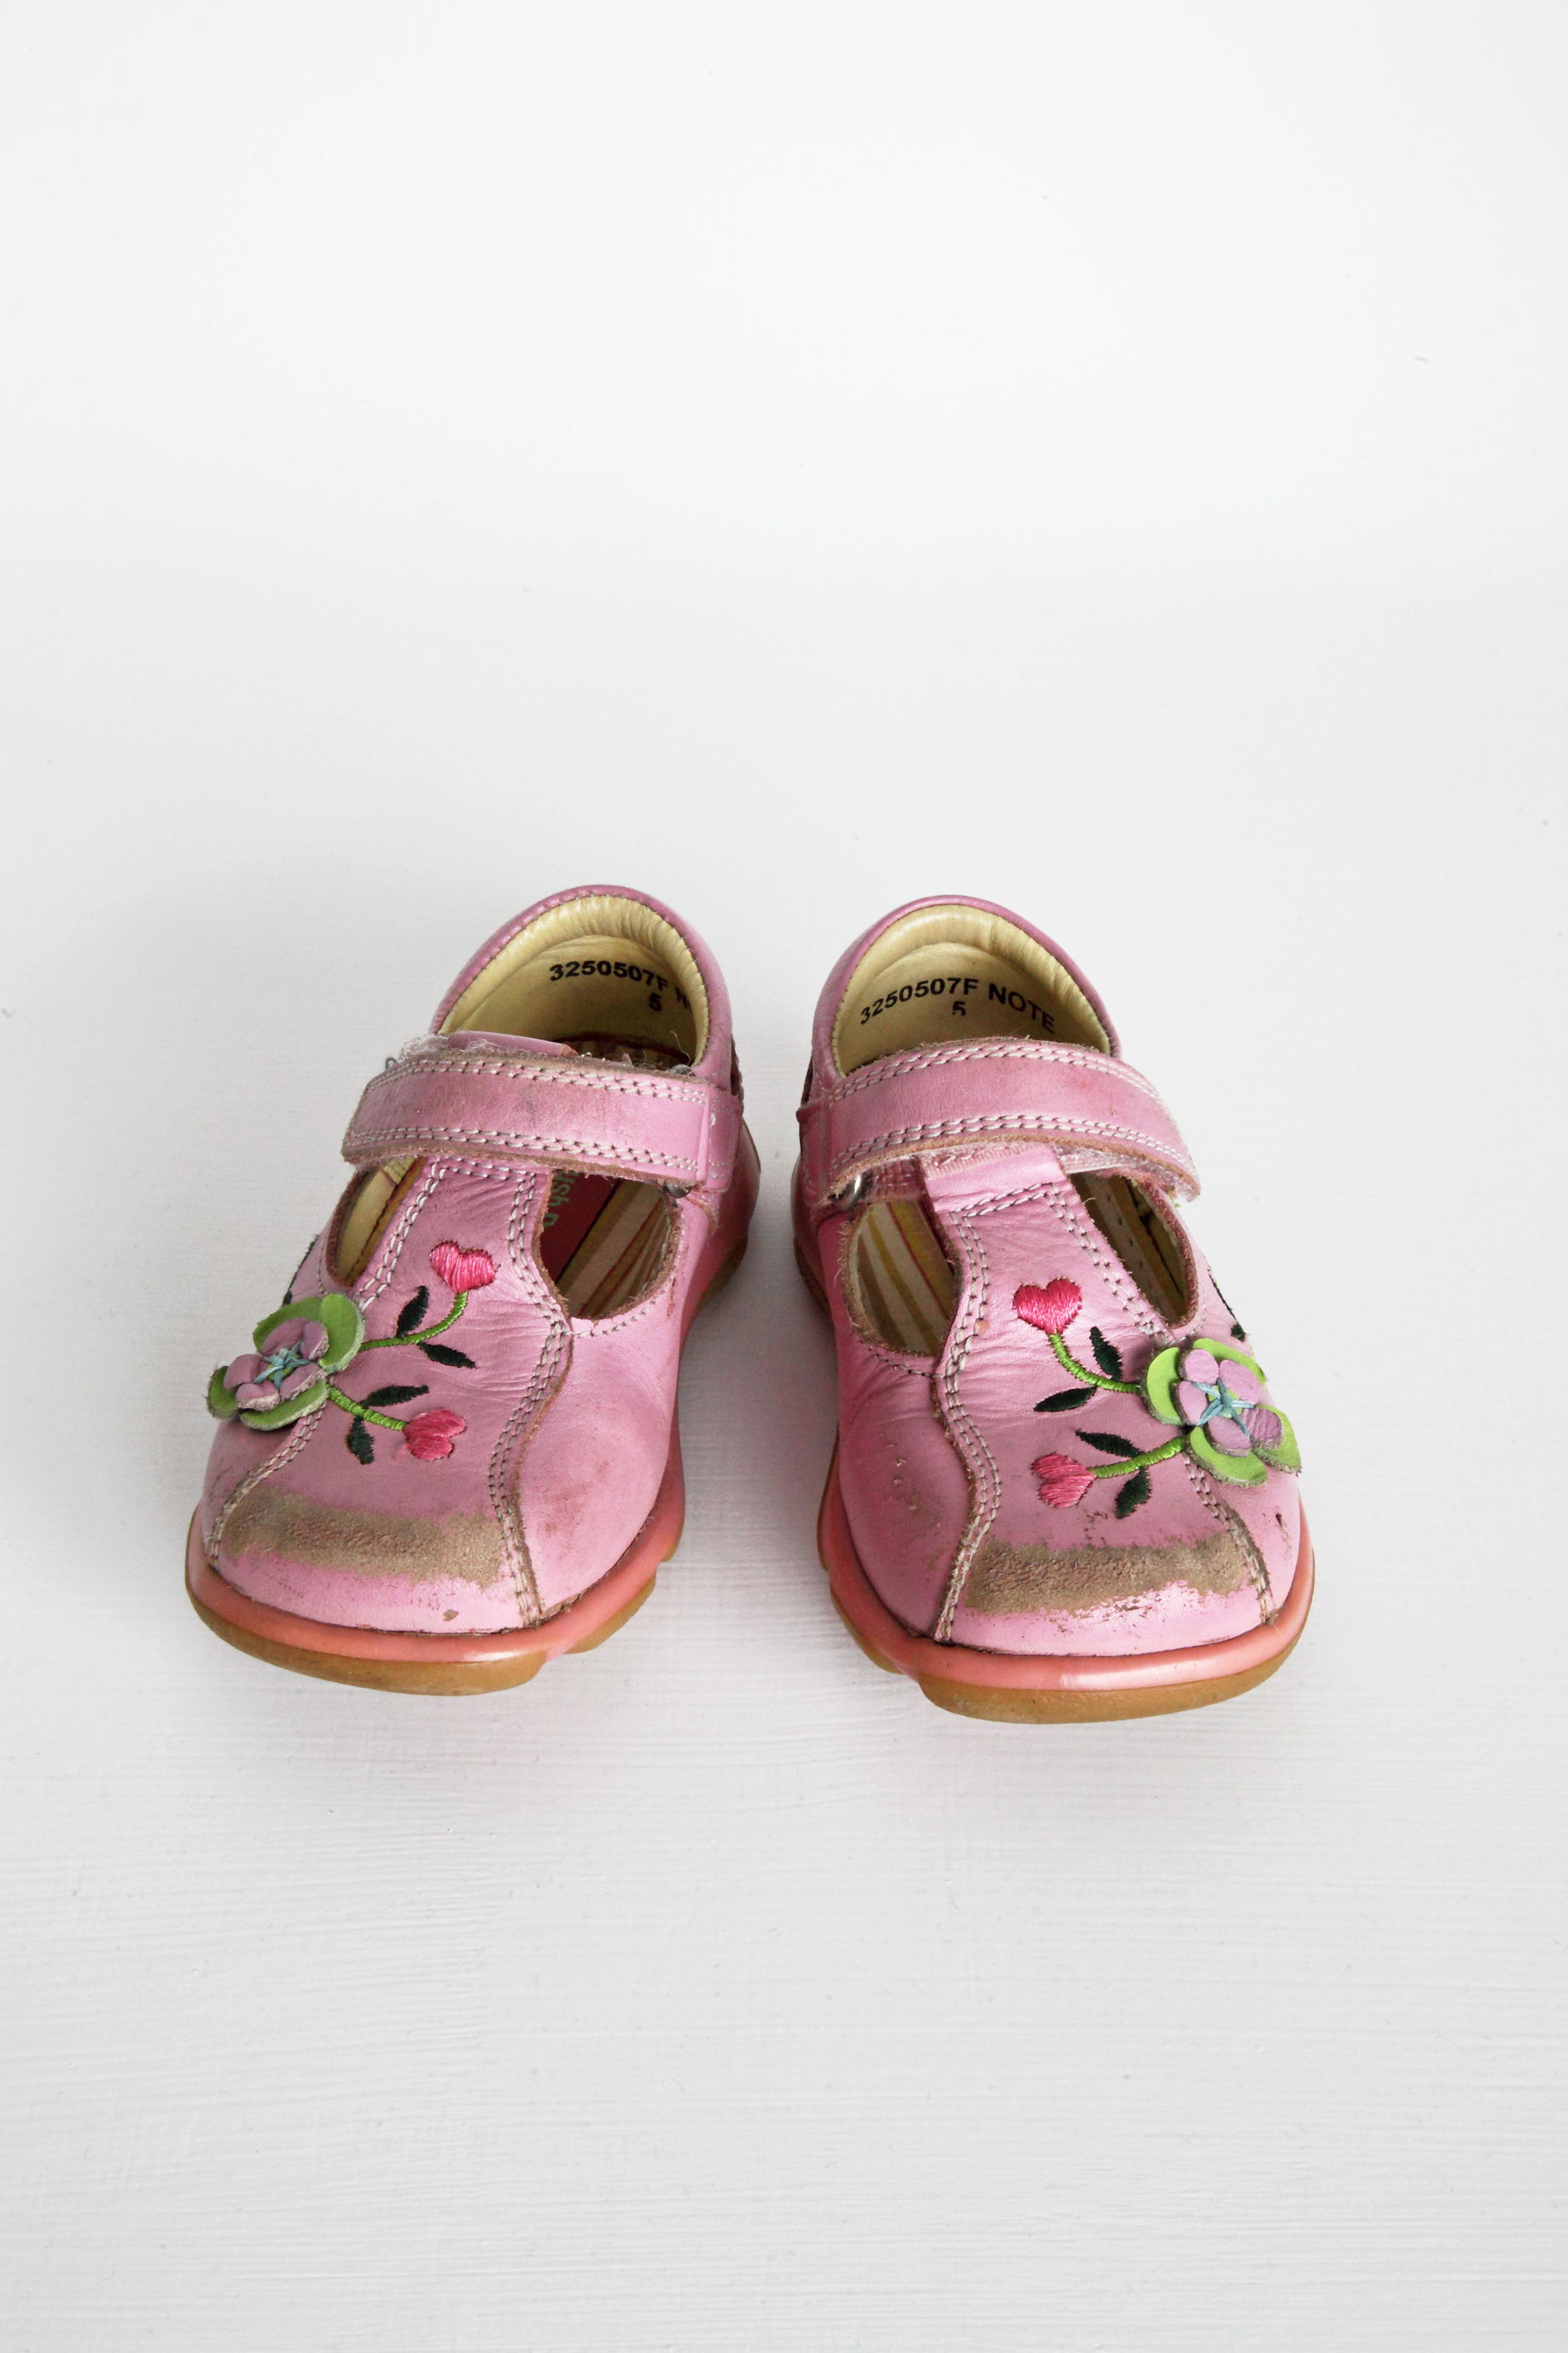 Pink Shoes - Hush Puppies - Size 5